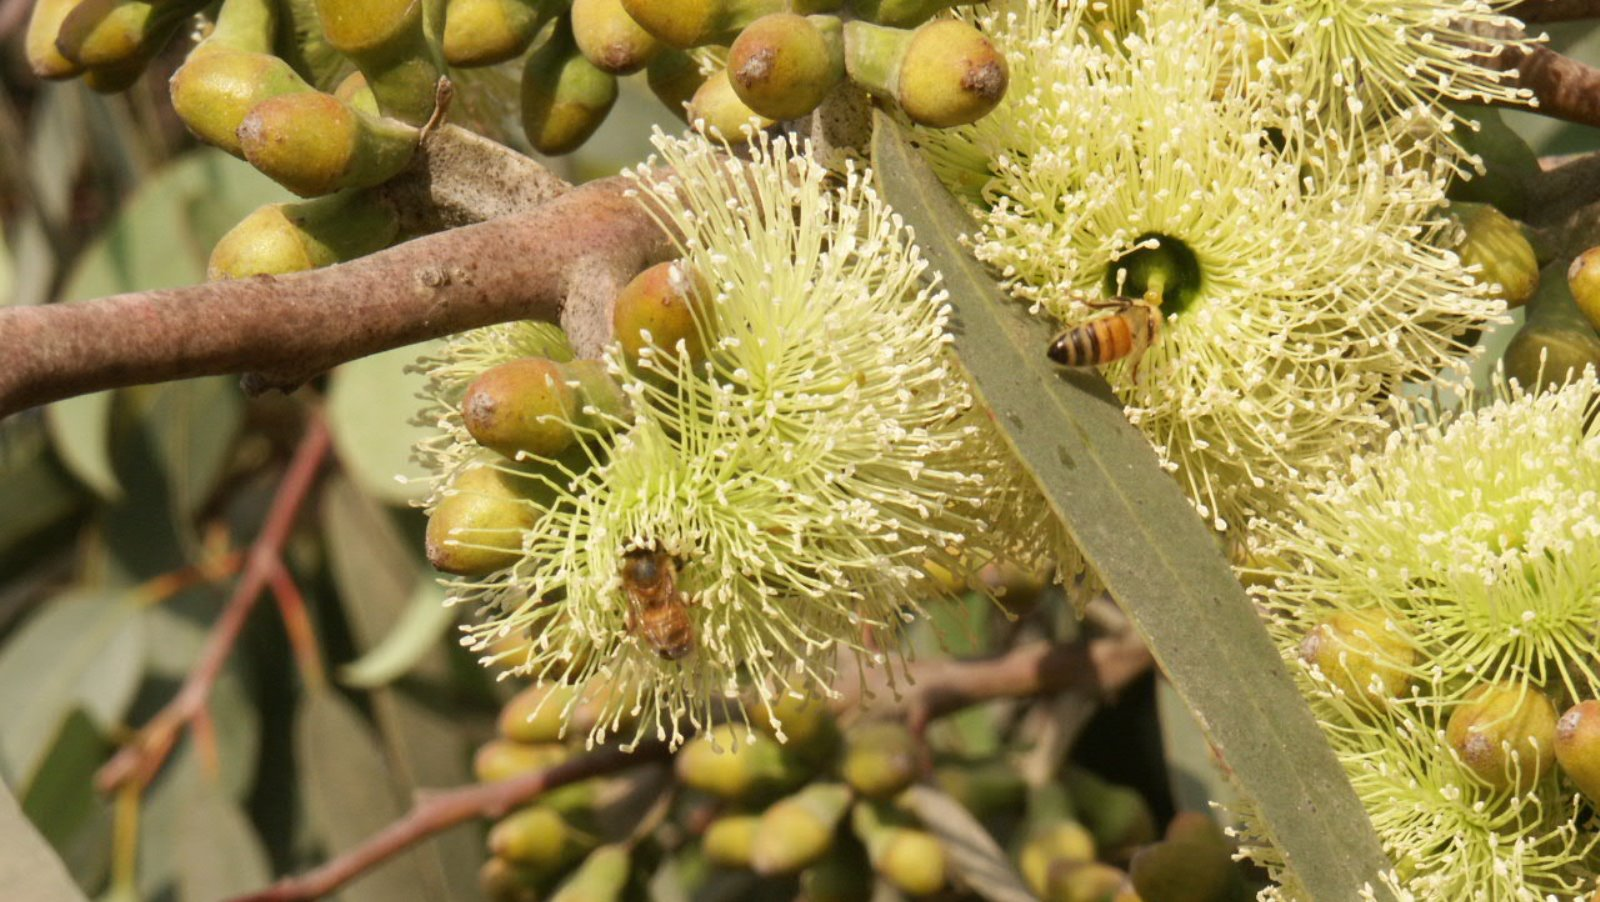 A honeybee feeding on a Eucalyptus Stricklandii (Strickland's Gum) tree. Photo by Gilat Nursery Director Pablo Chercasky/KKL-JNF